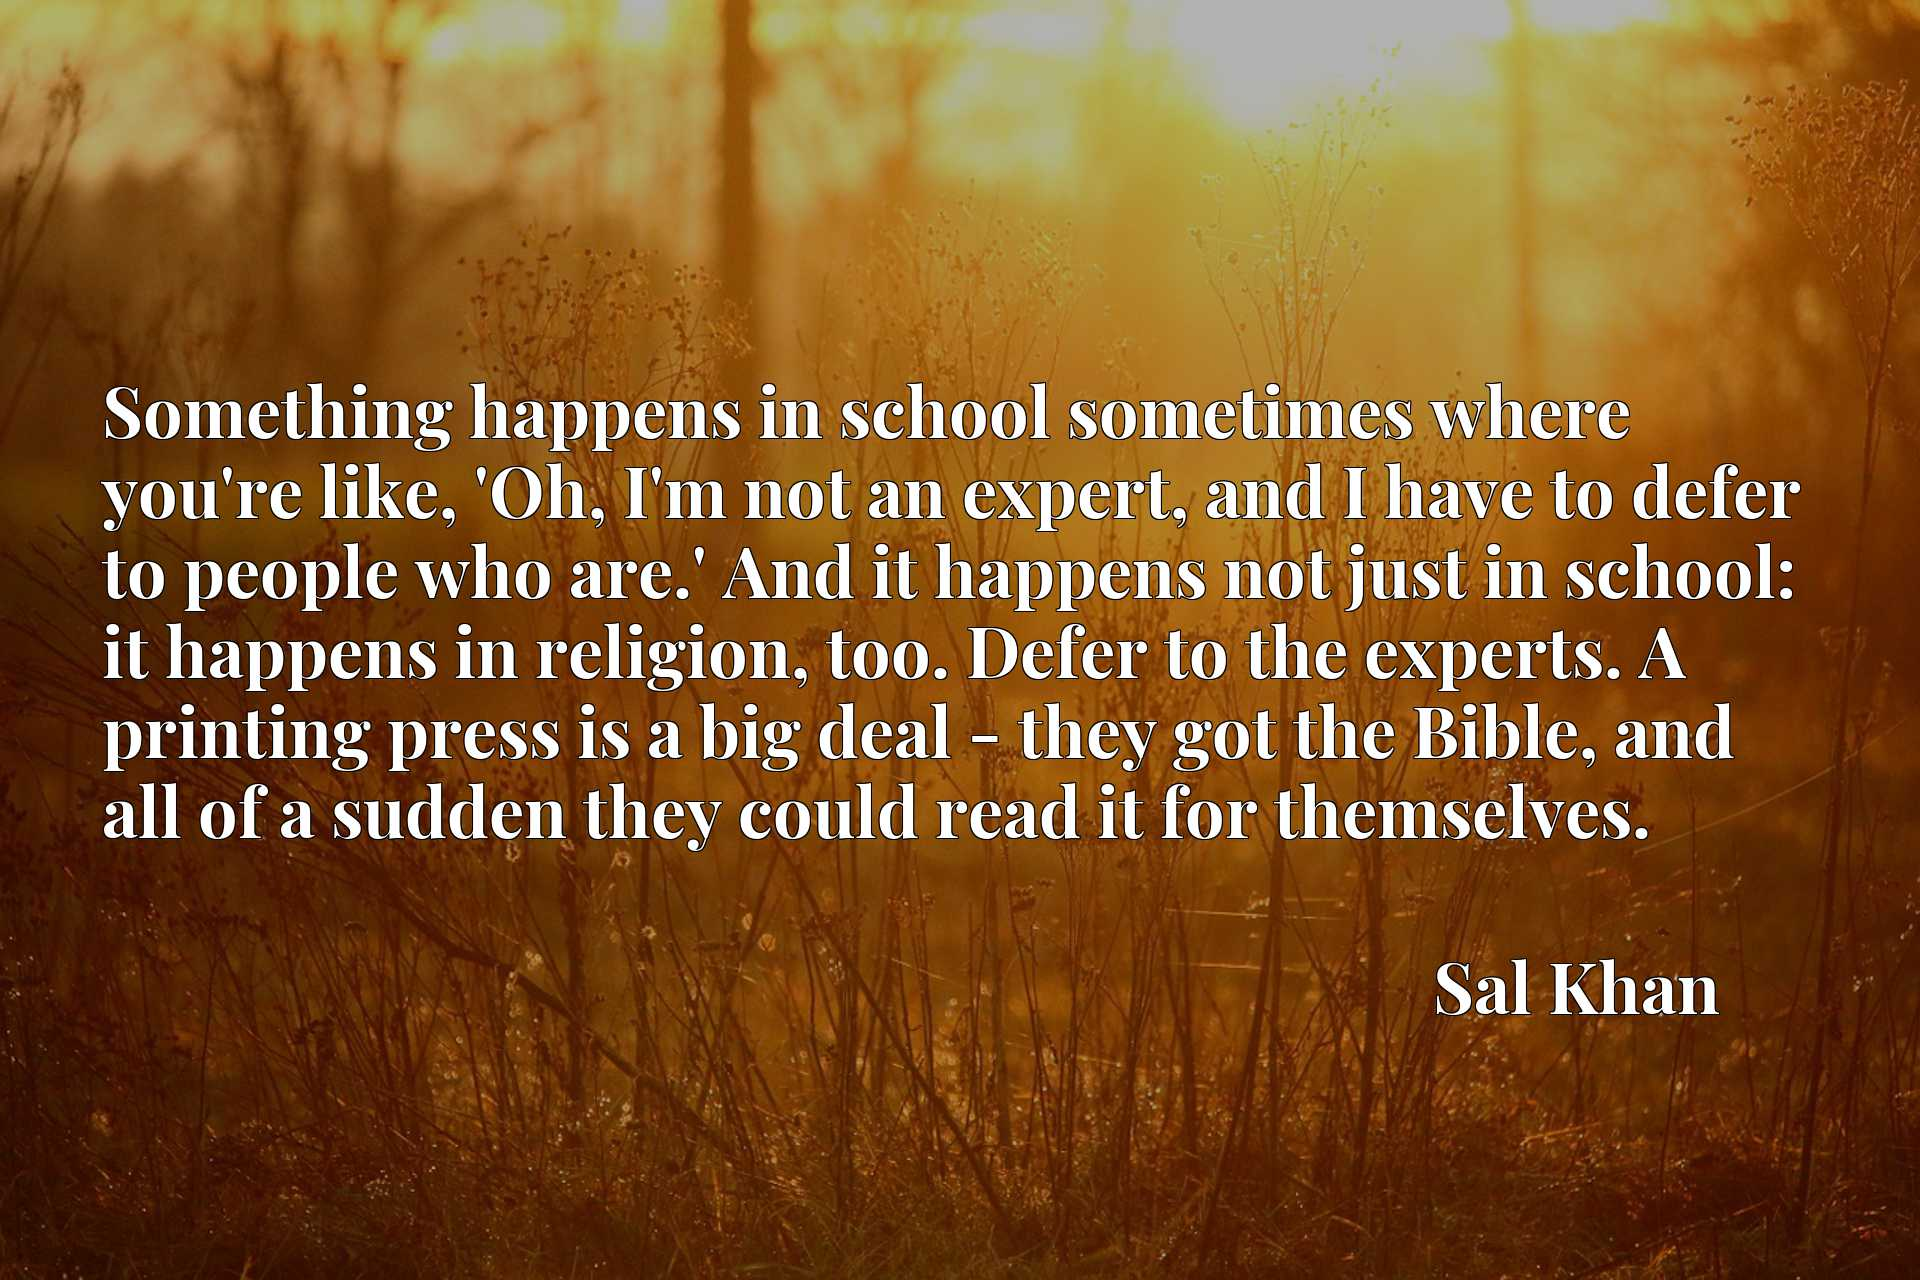 Something happens in school sometimes where you're like, 'Oh, I'm not an expert, and I have to defer to people who are.' And it happens not just in school: it happens in religion, too. Defer to the experts. A printing press is a big deal - they got the Bible, and all of a sudden they could read it for themselves.